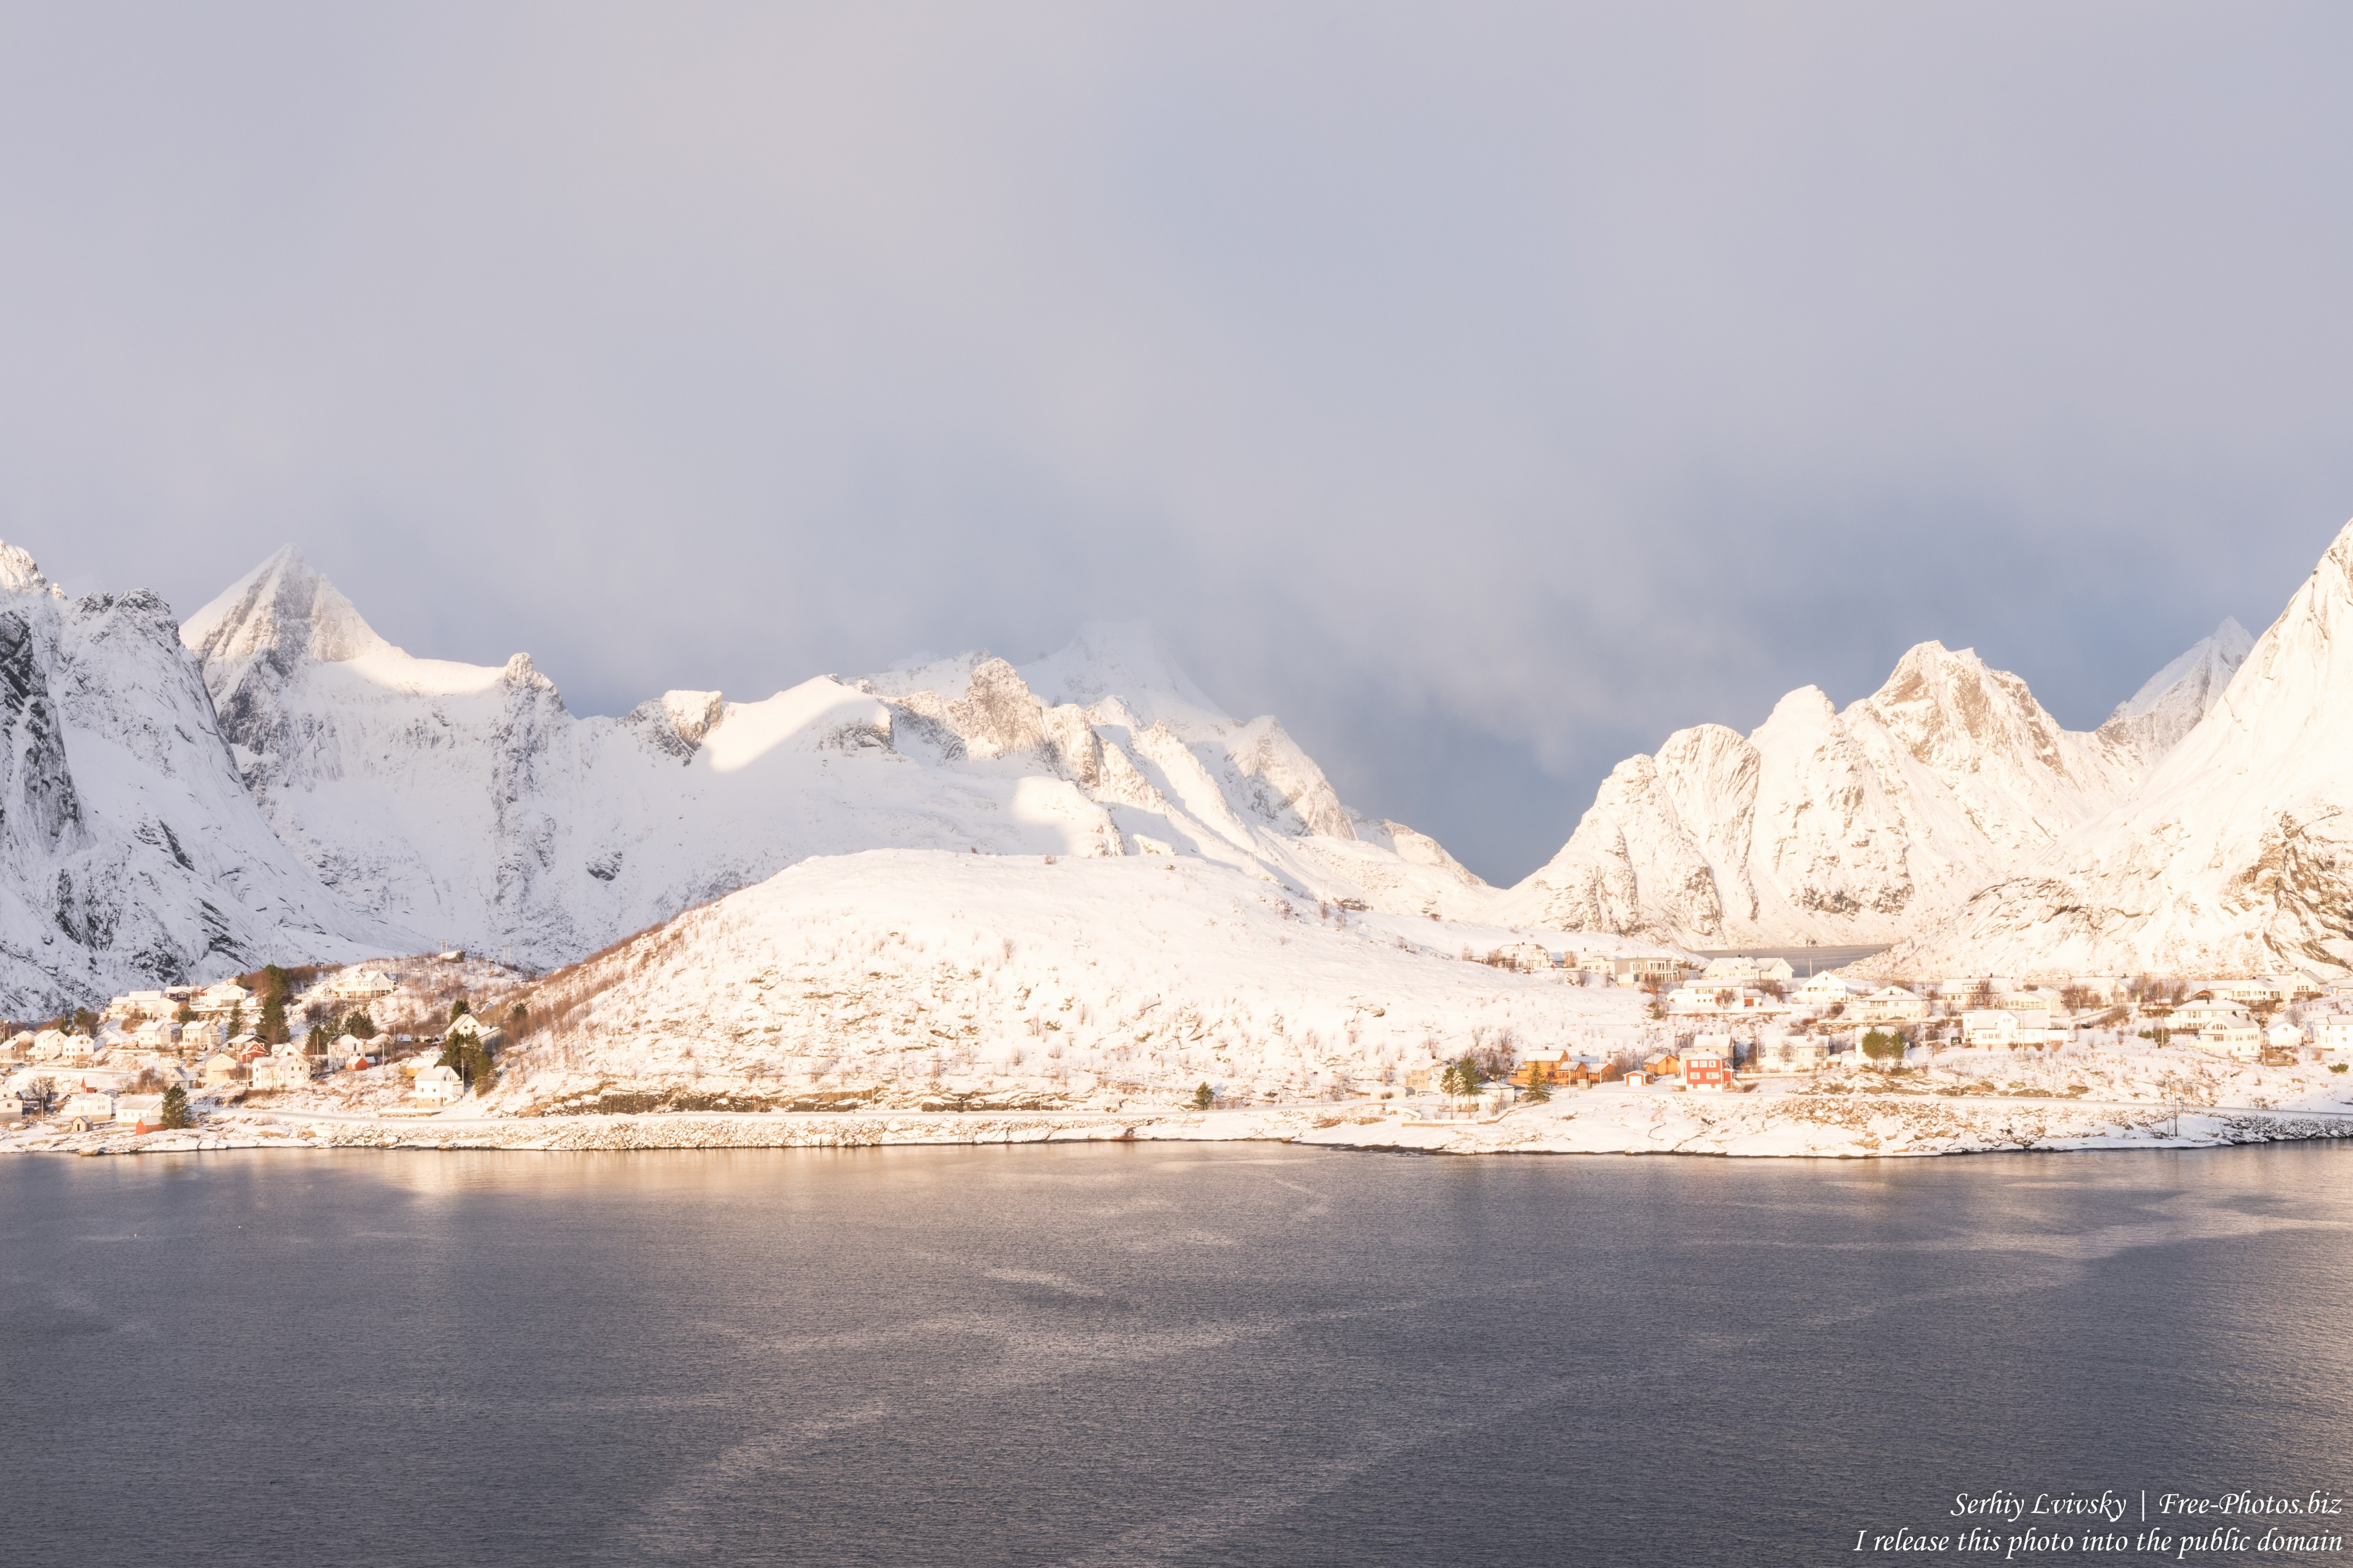 Sakrisoy and surroundings, Norway, in February 2020 by Serhiy Lvivsky, picture 30